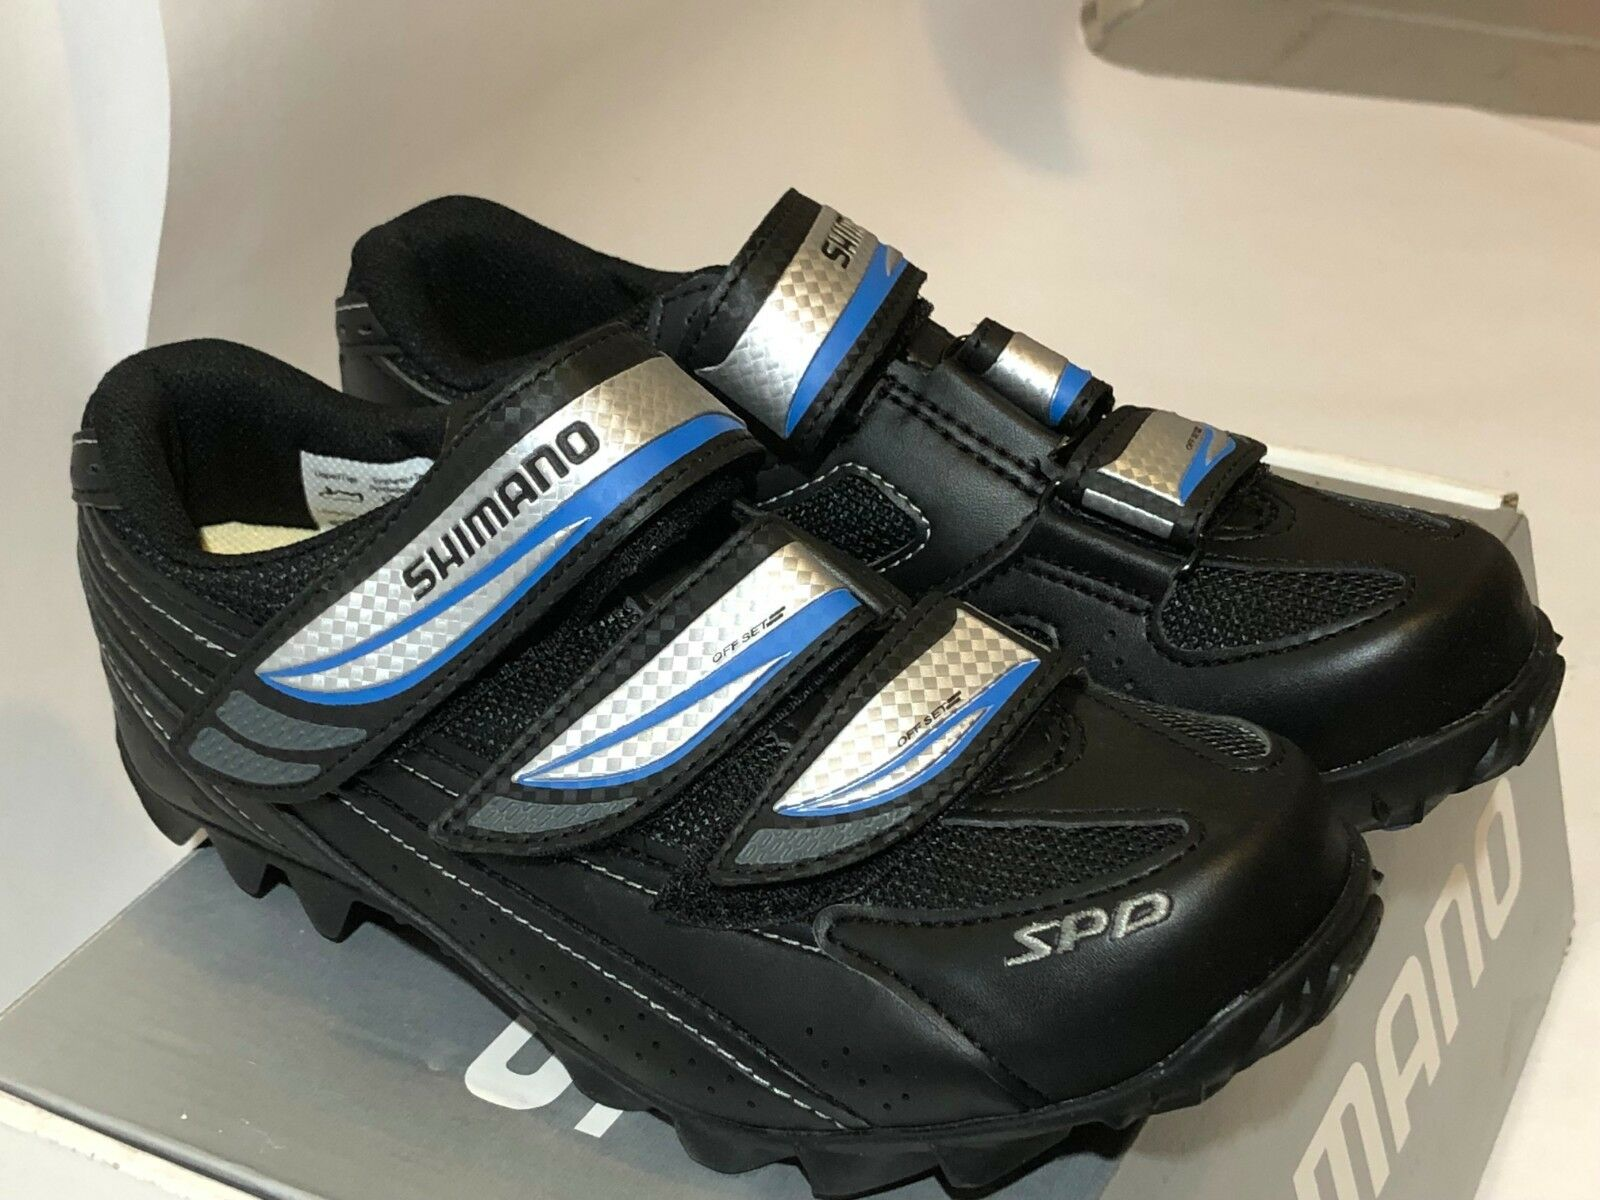 New Shimano SH-WM51 Womens Cycling Mountain Biking Shoes CLE